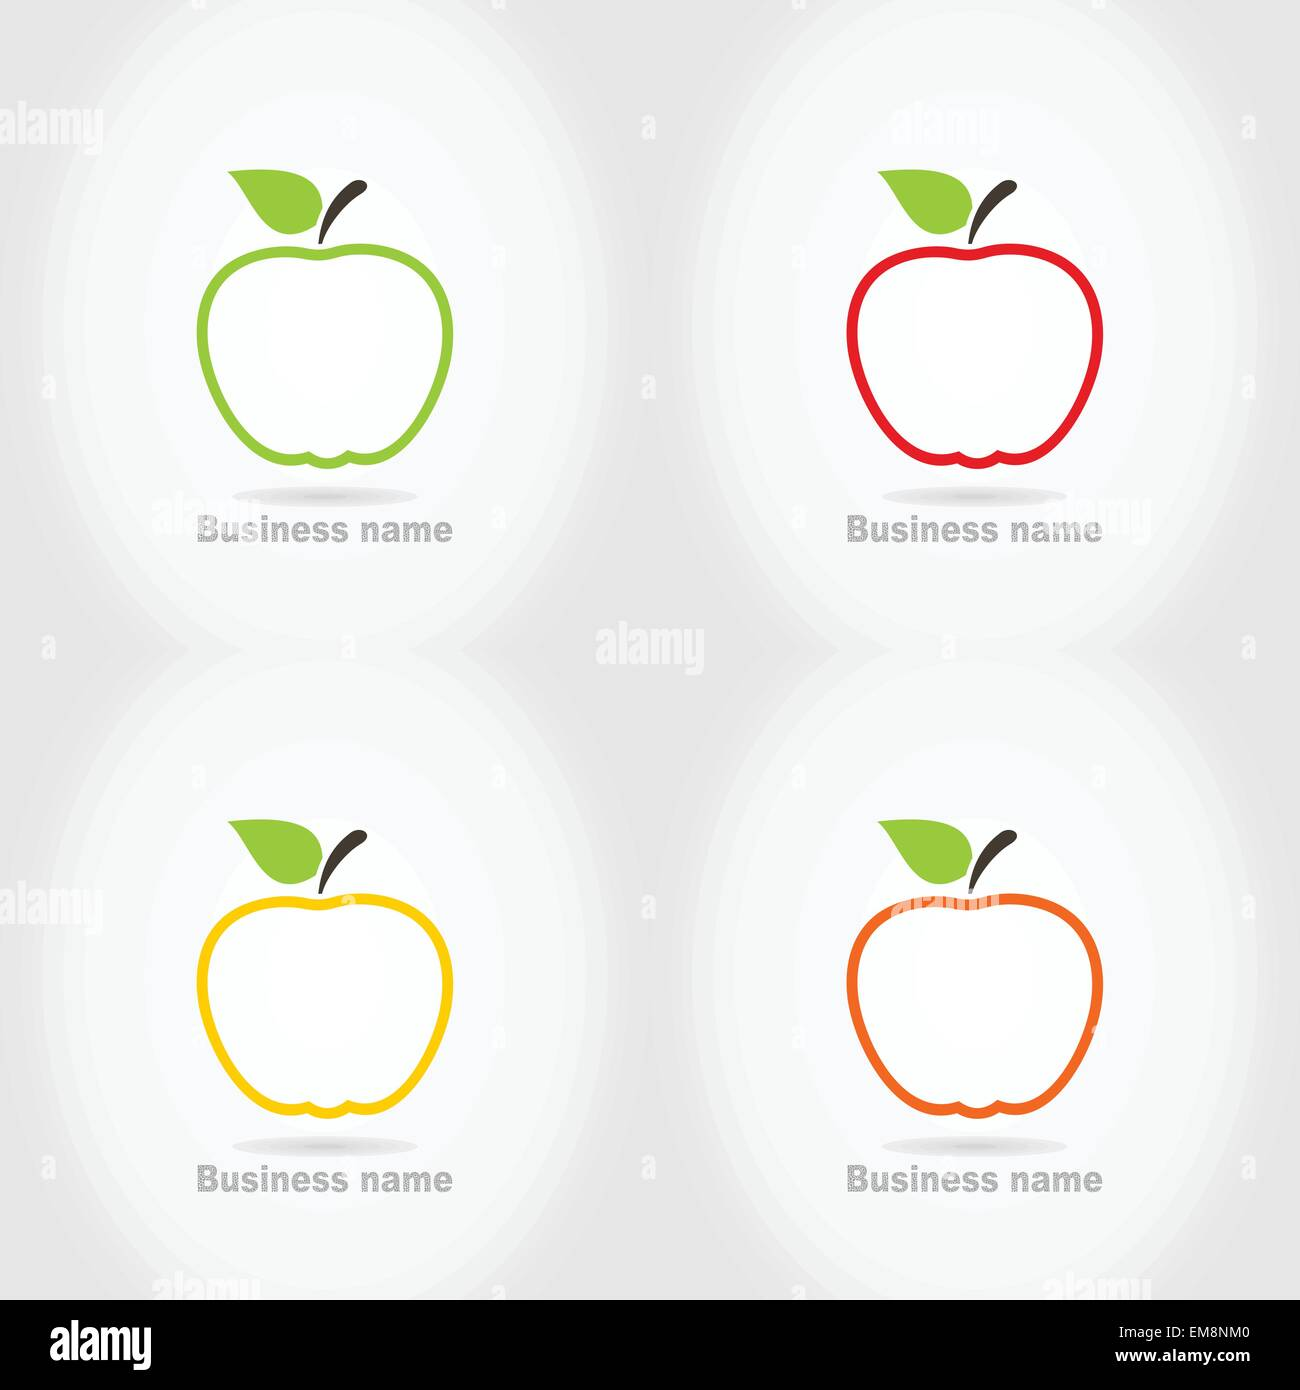 Apples Healthy Food Icons Image Stock Photos & Apples